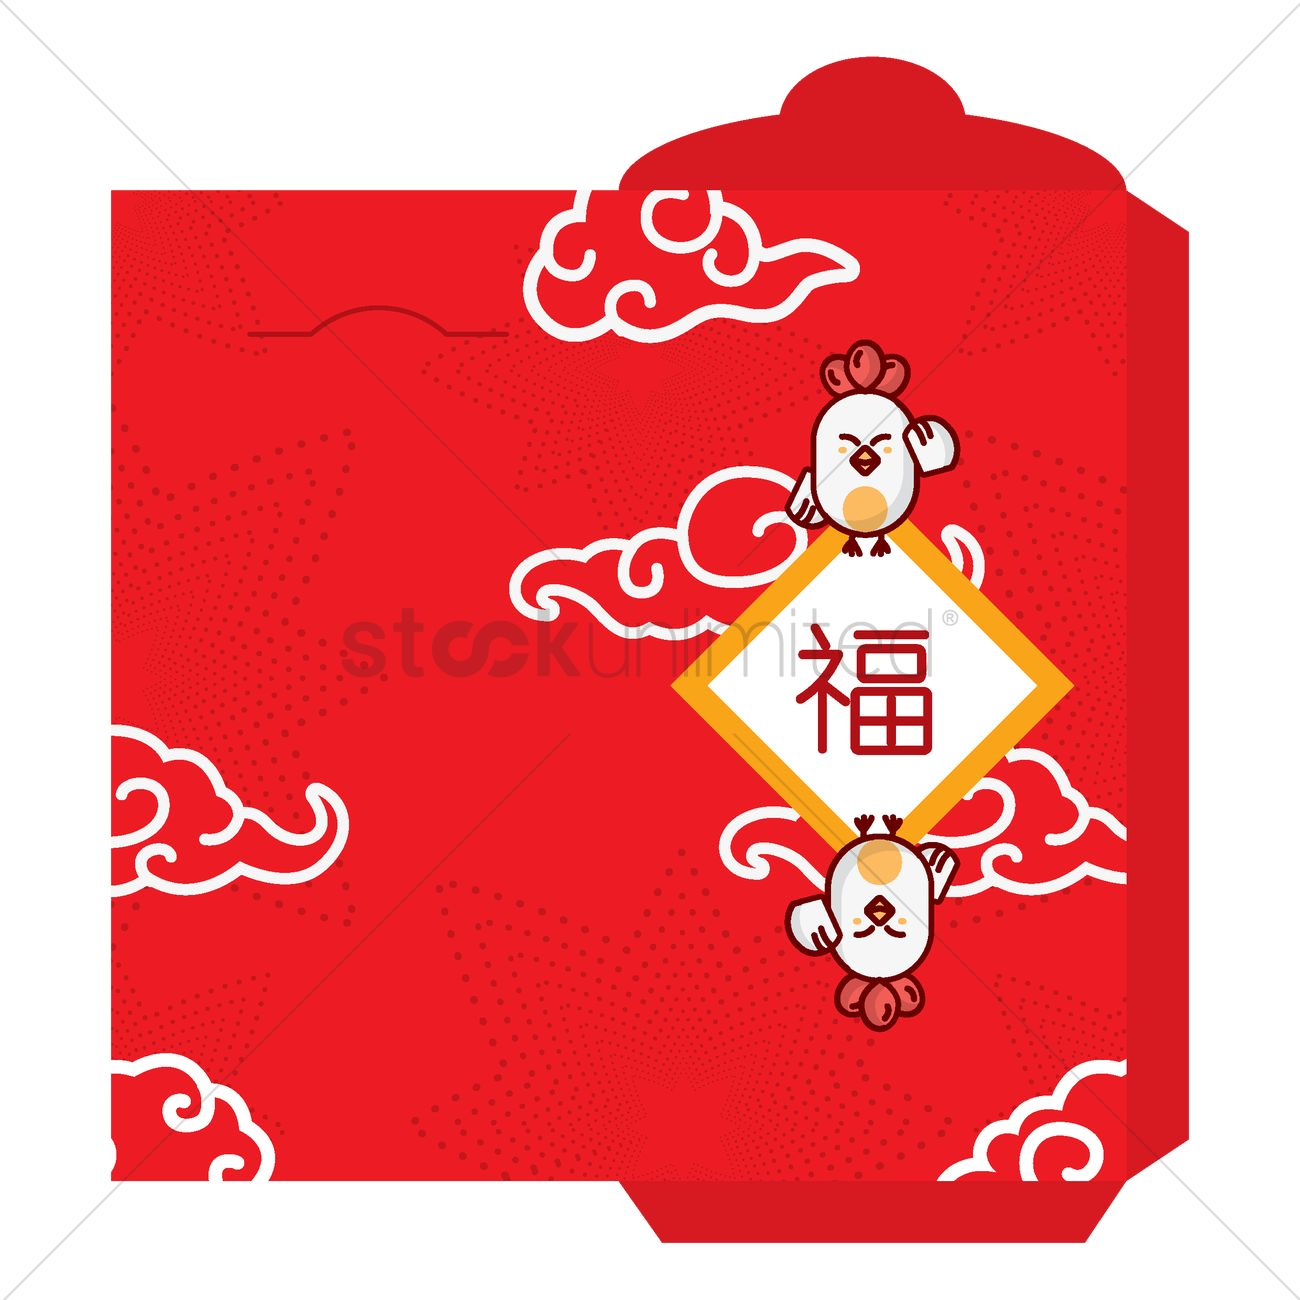 red envelope template vector image 1966881 stockunlimited